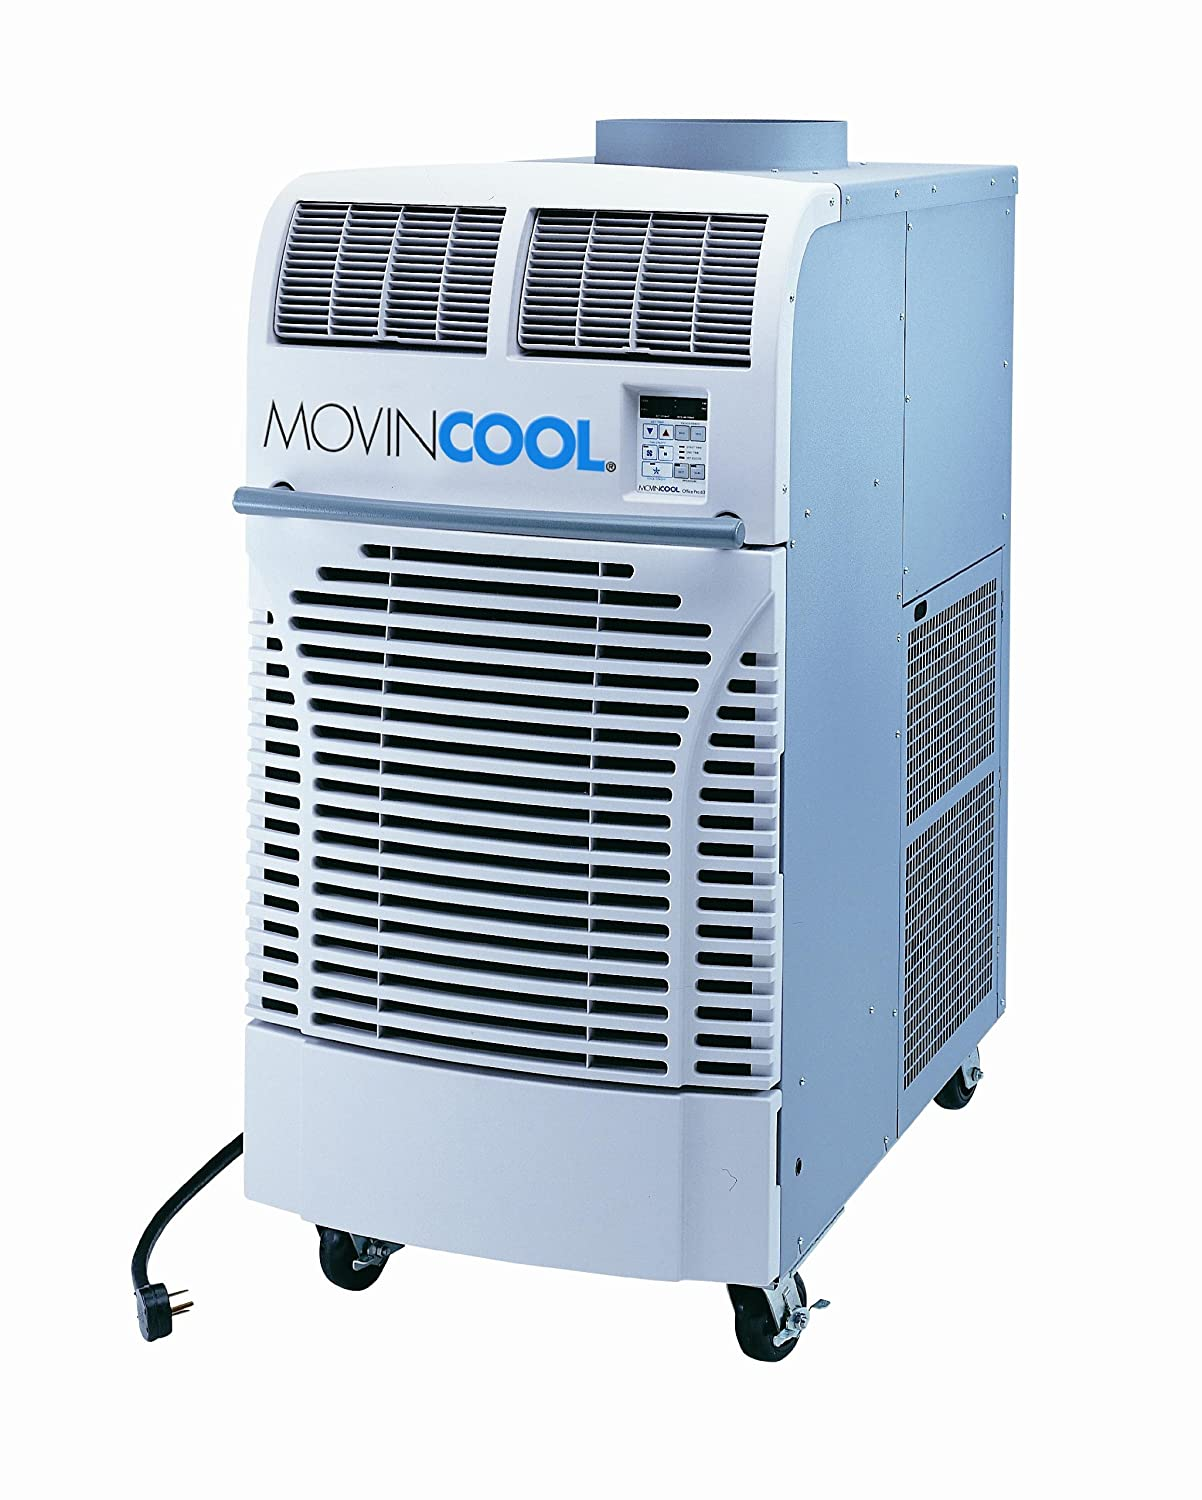 Amazon.com: MovinCool Office Pro 60 Commercial Portable Air ...